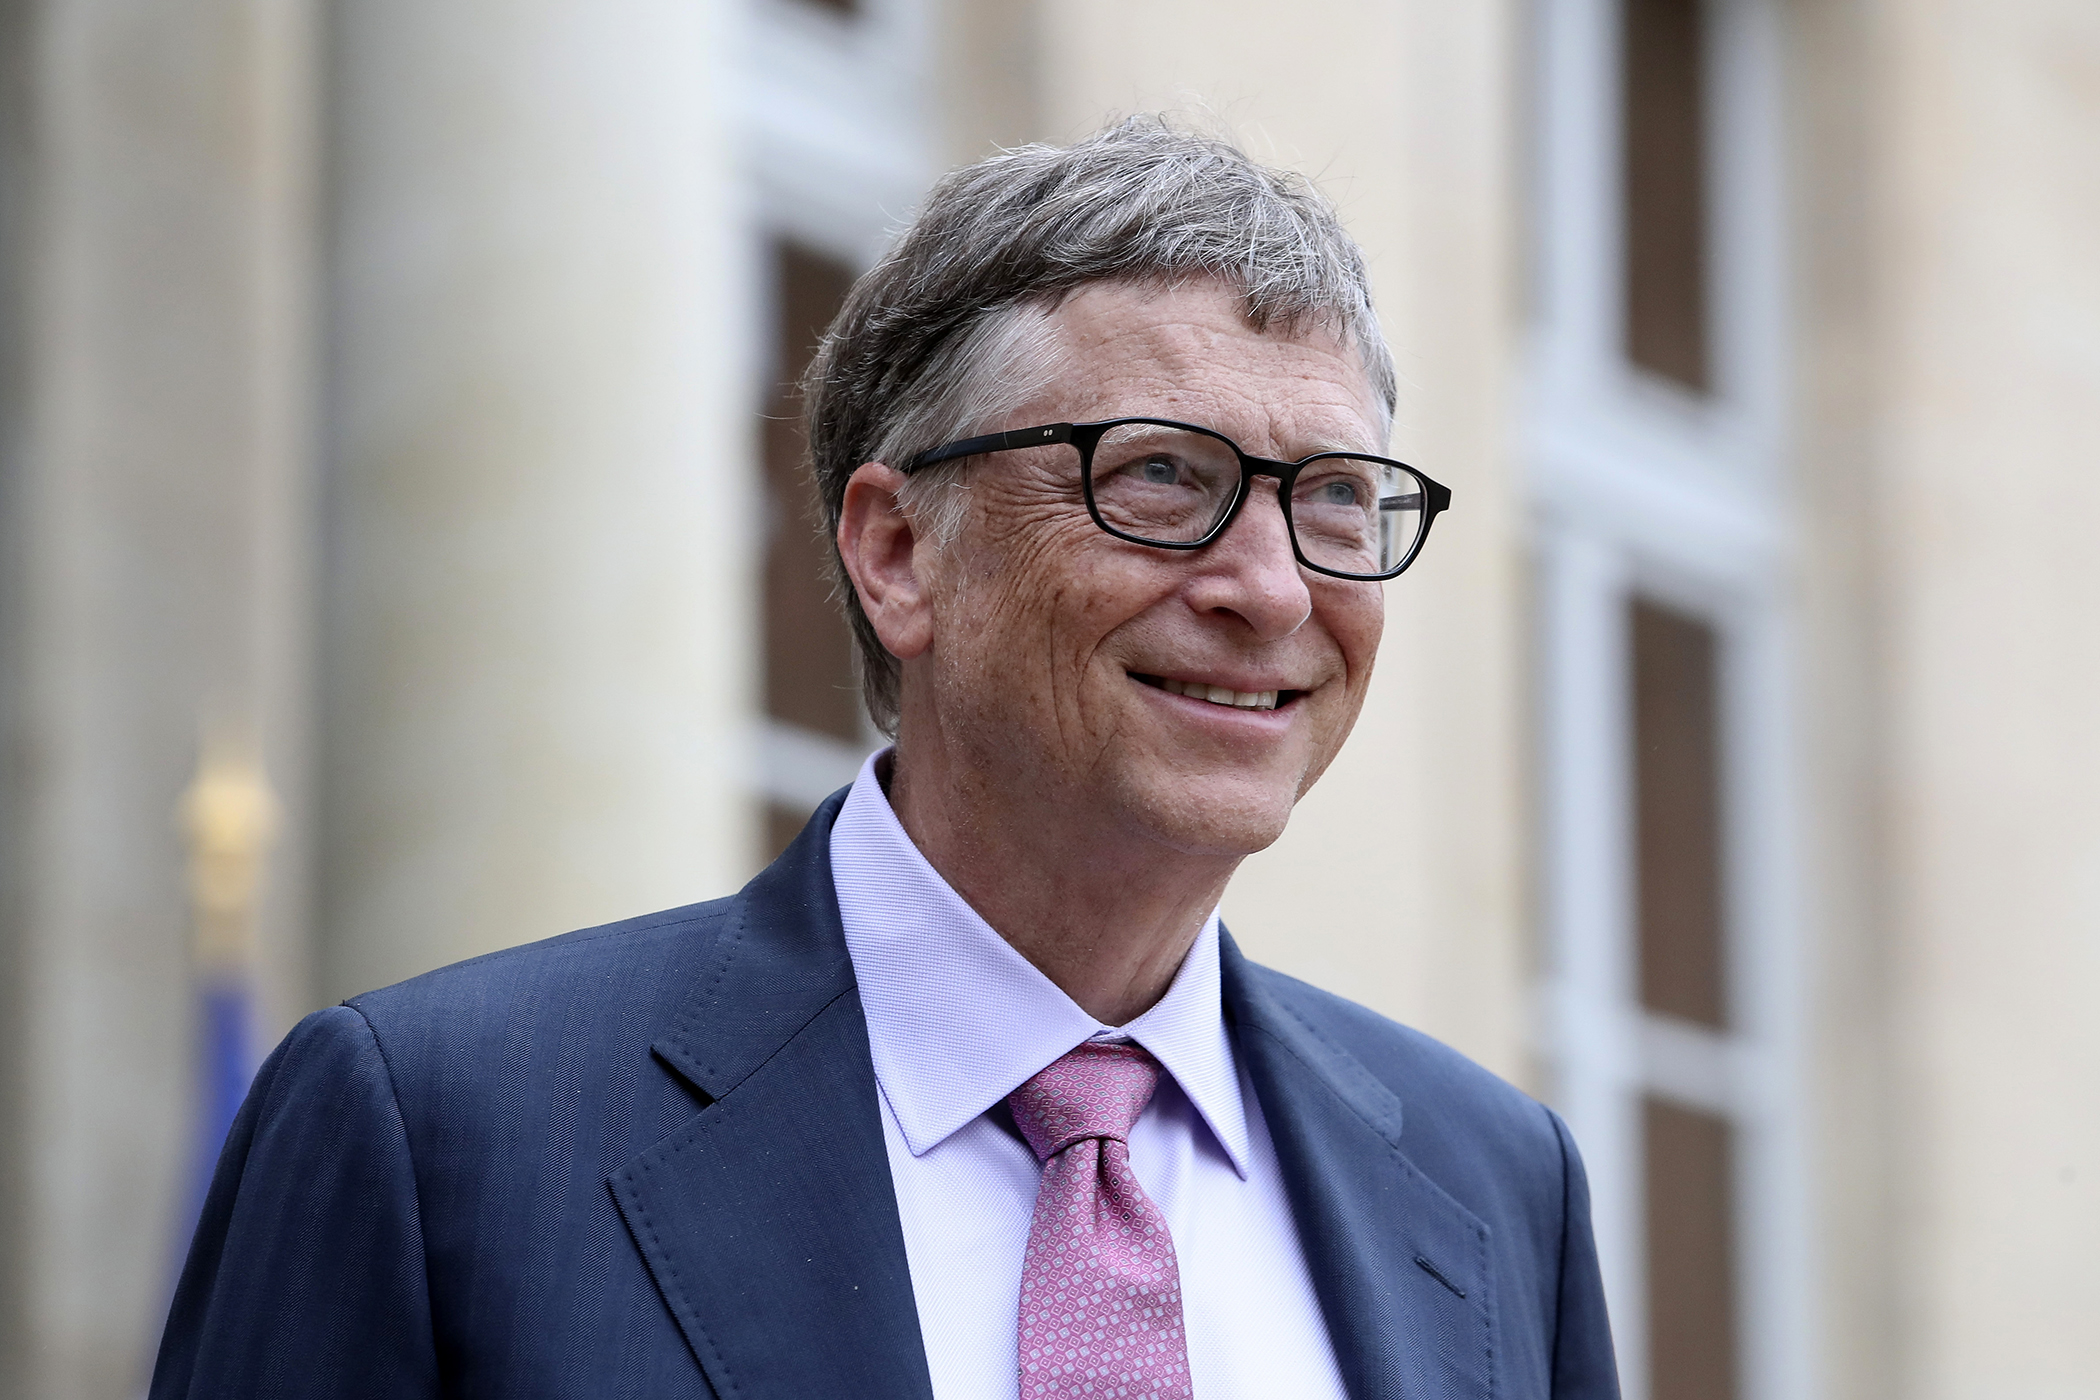 Philanthropist and co-founder of Microsoft, Bill Gates, leaves after a meeting with France's President Francois Hollande at the Elysee Palace in Paris, Monday, June 27, 2016.